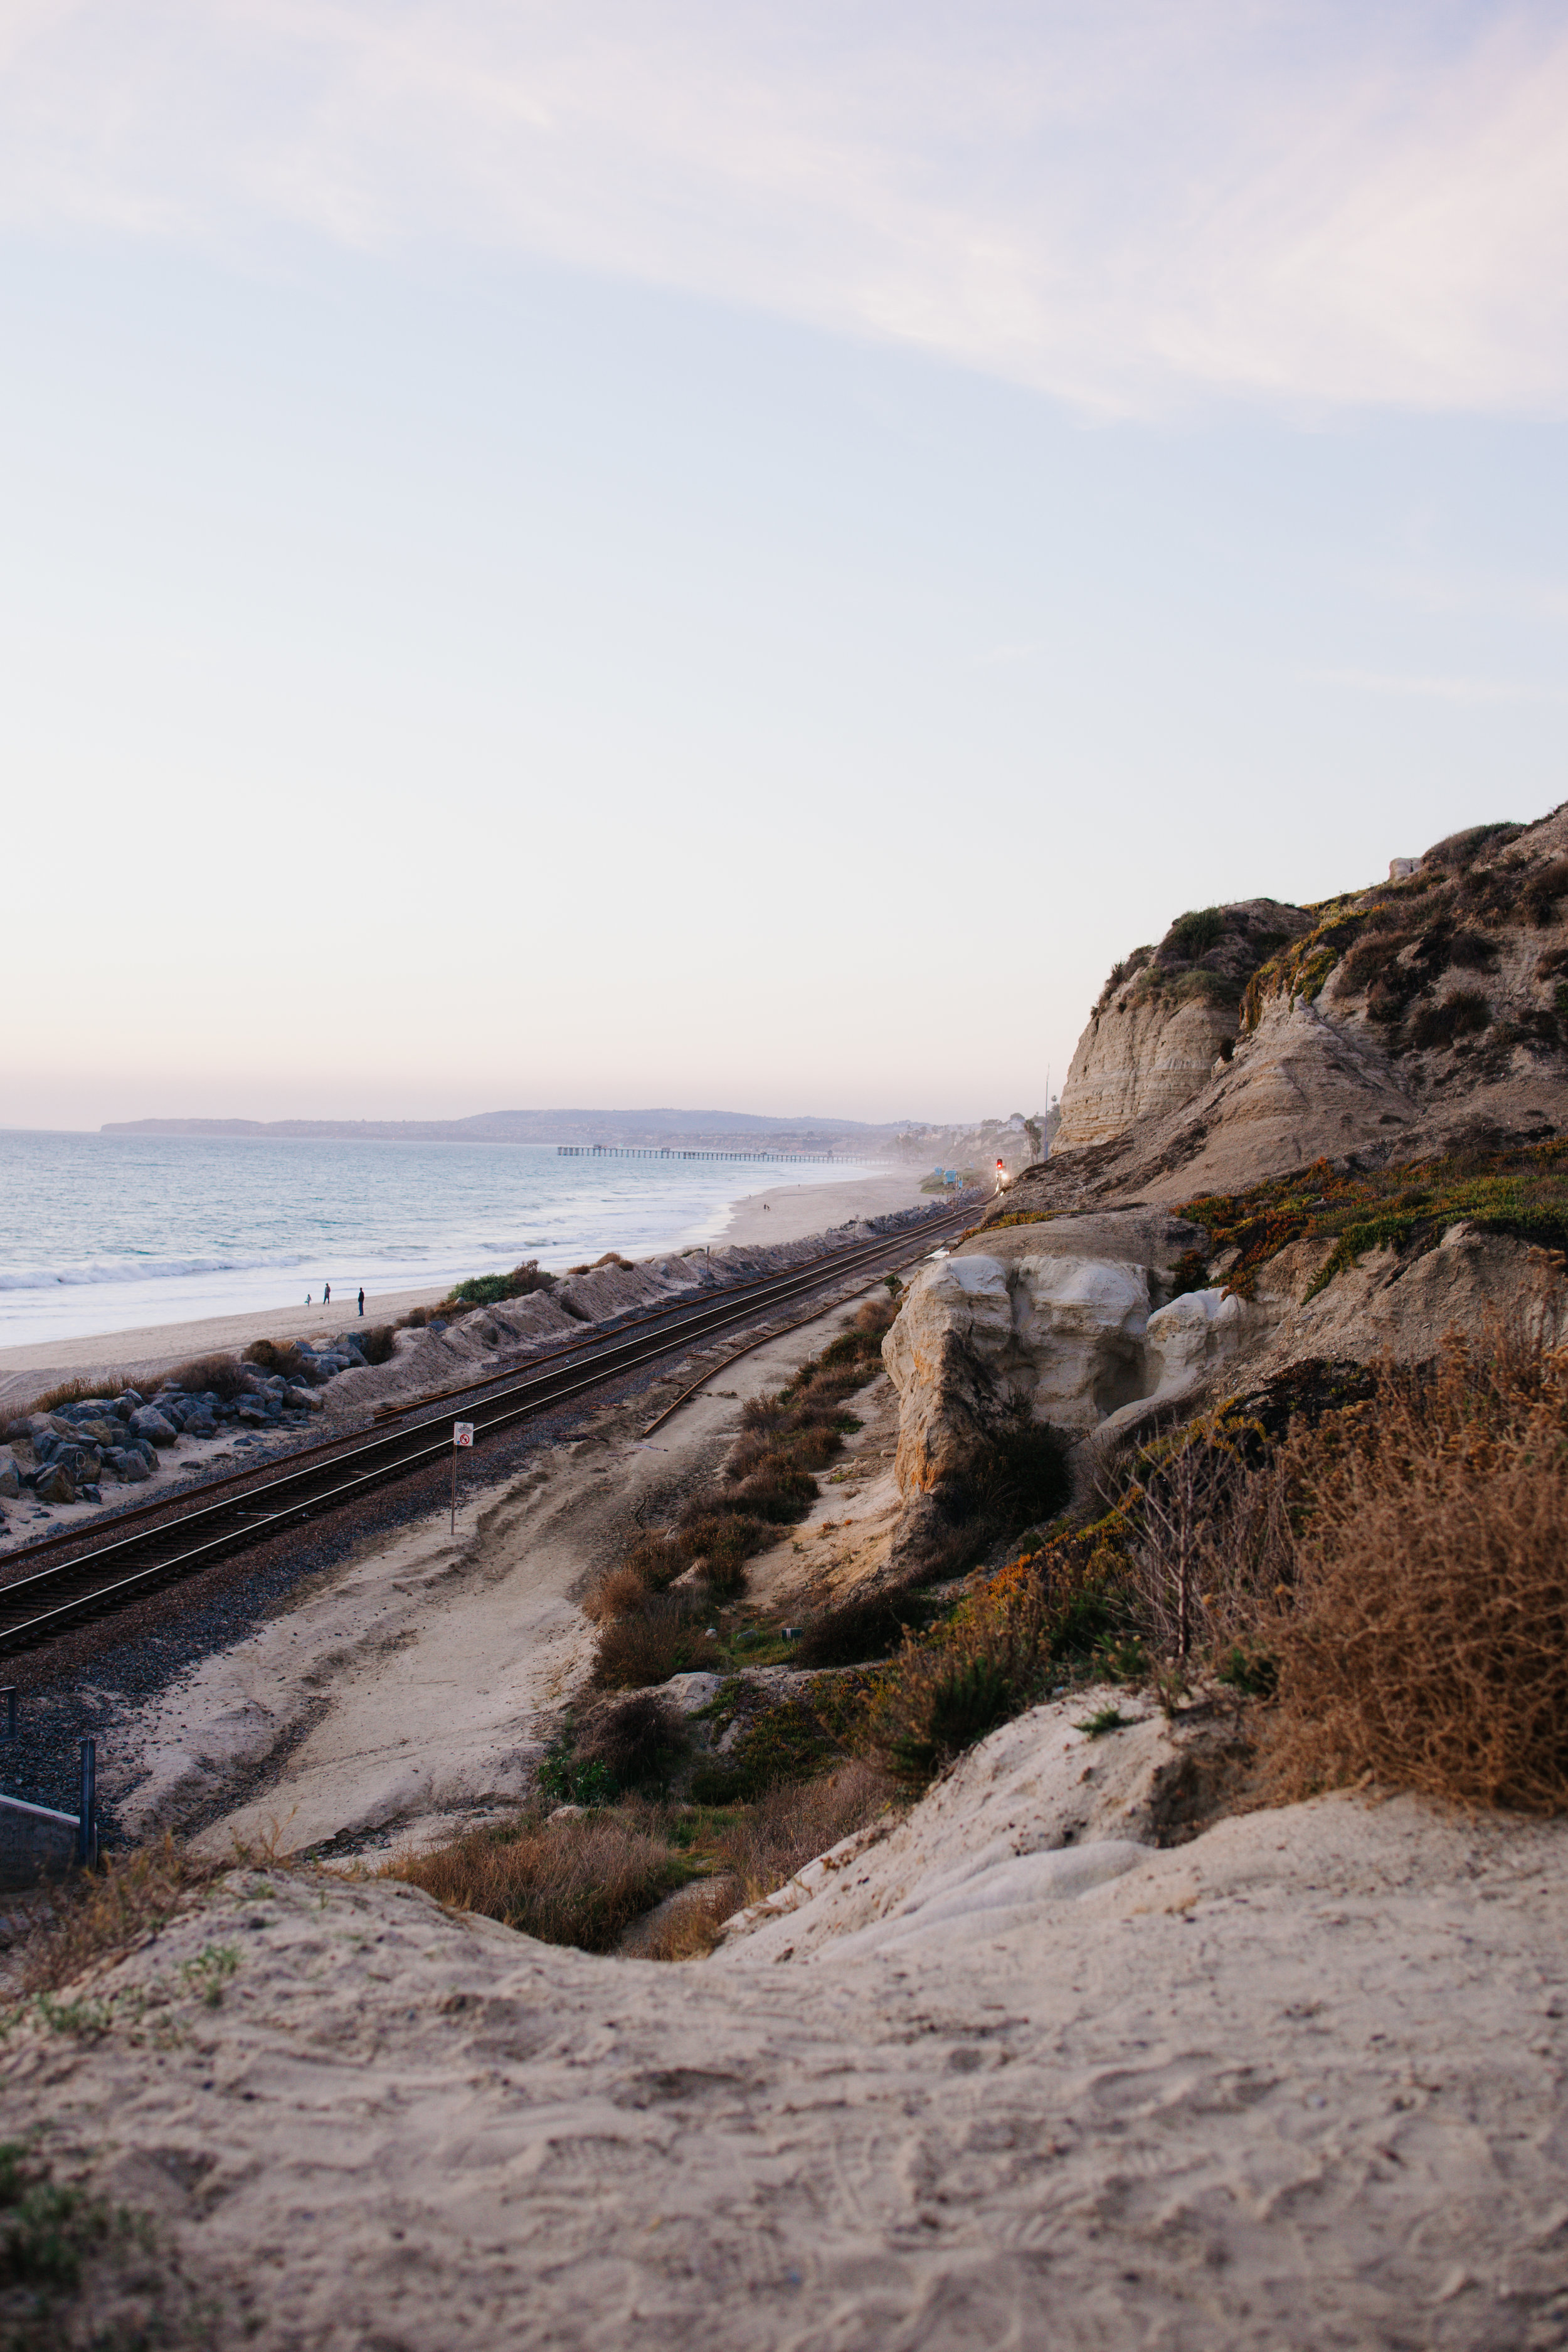 Cliffs and Railroad Tracks at San Clemente State Beach